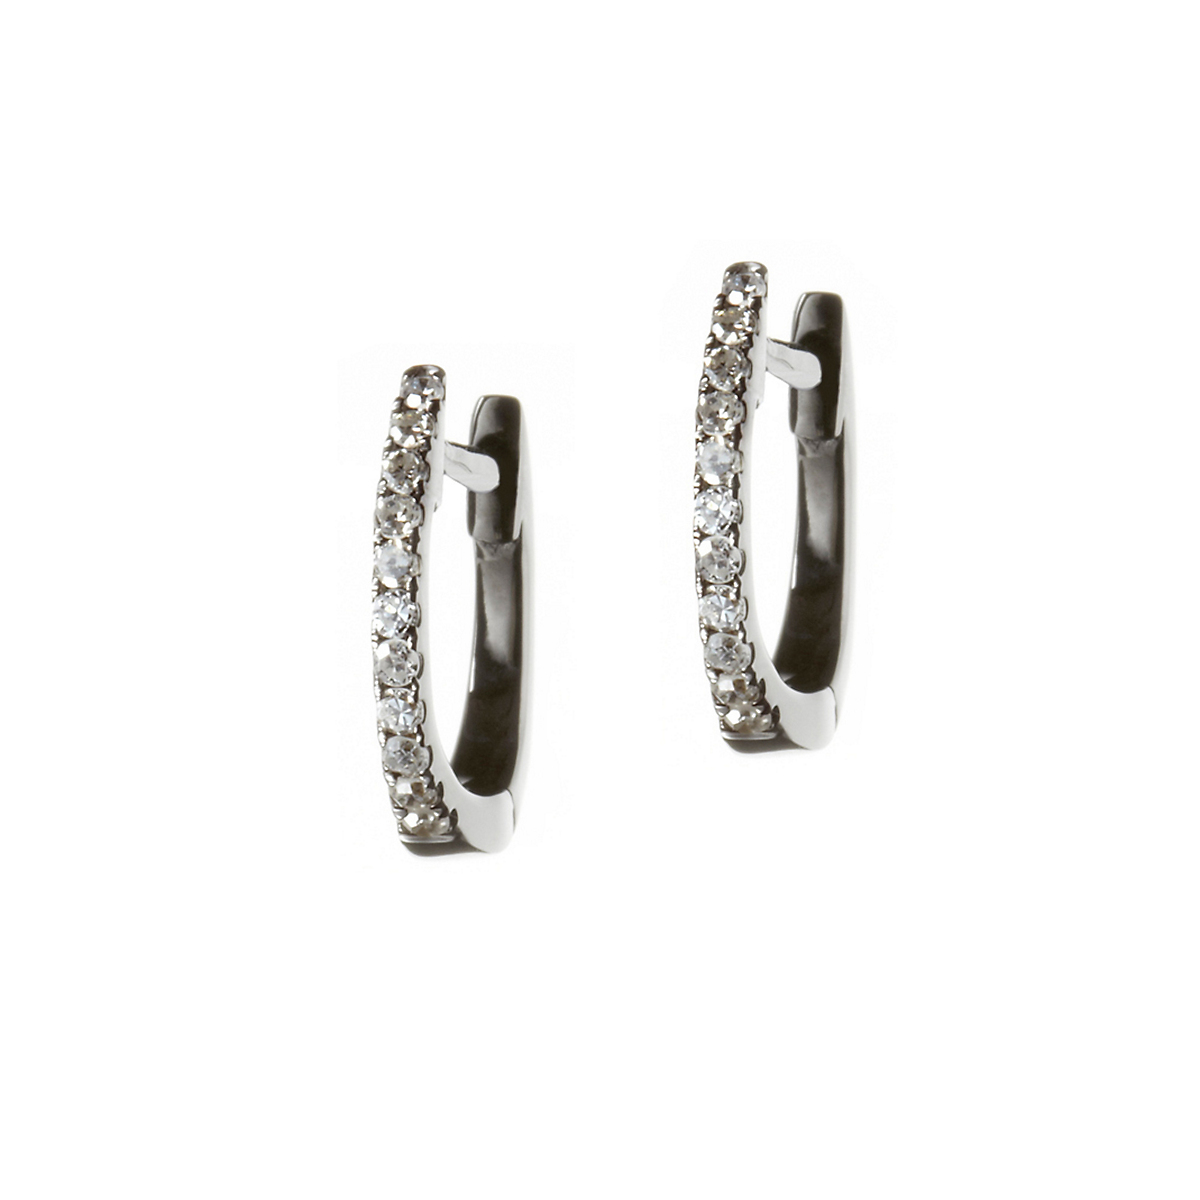 Nikki Baker Lusso White Gold & Diamond Mini Hoop Earrings